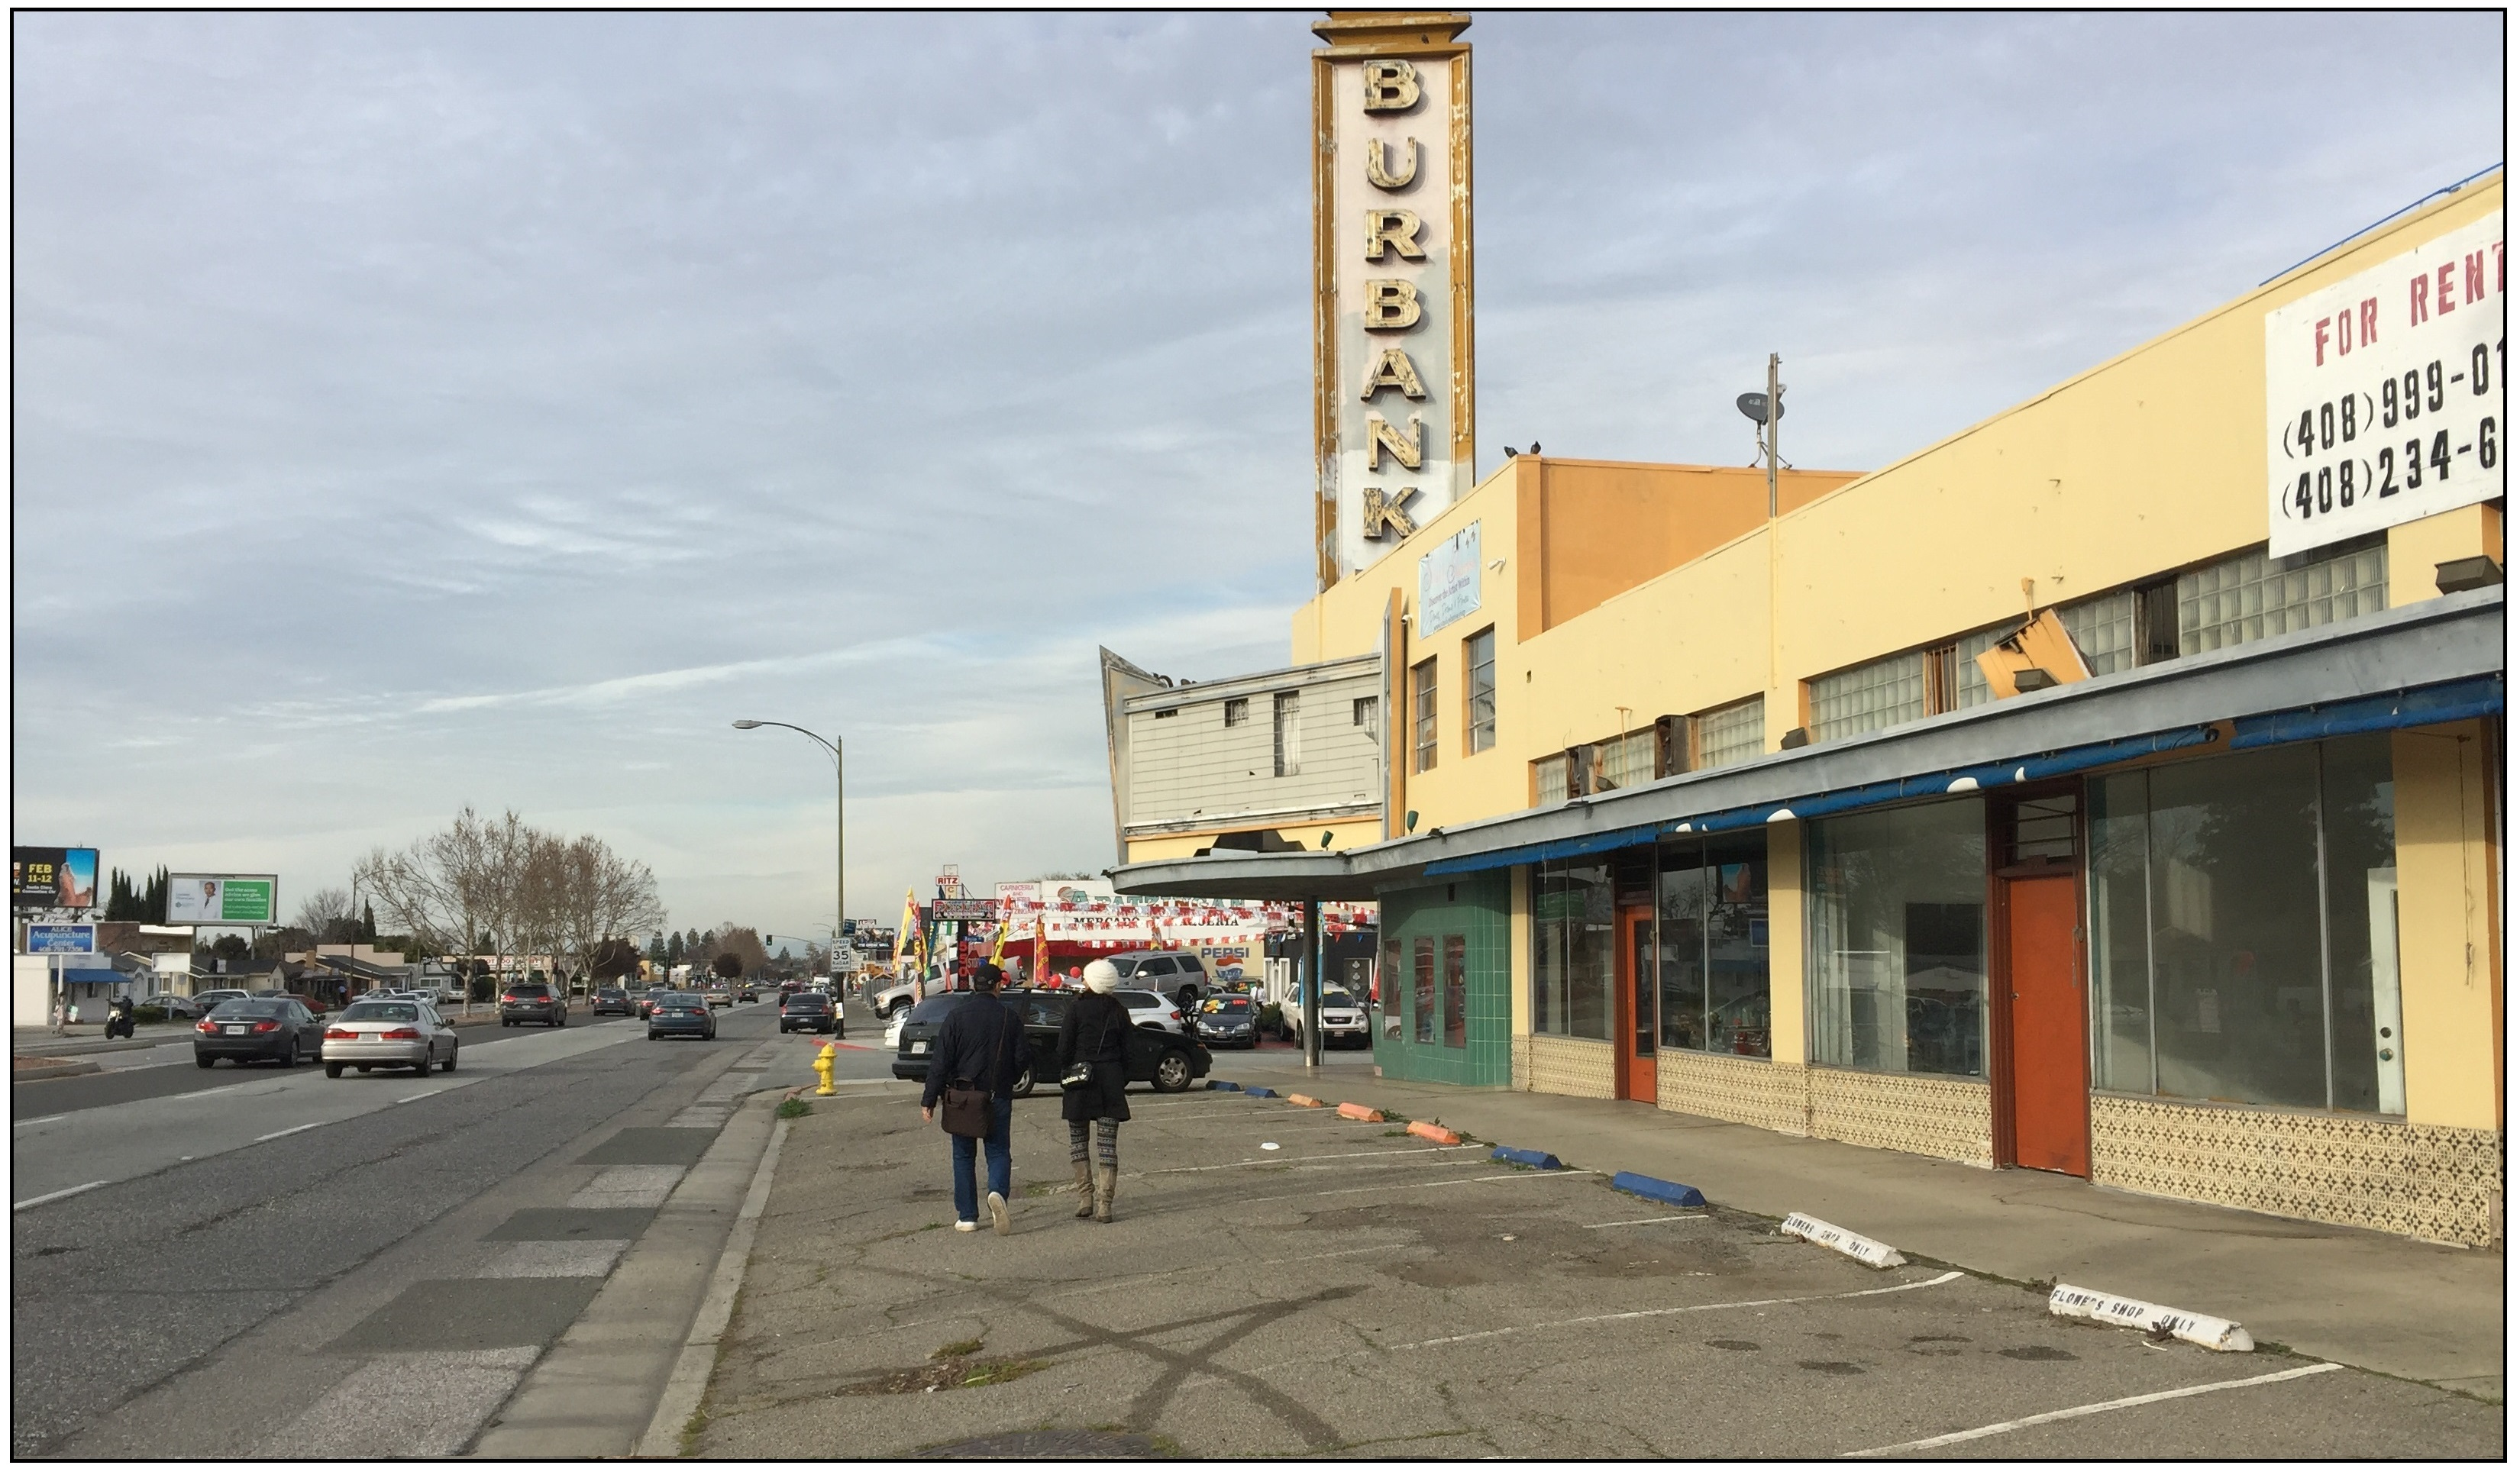 Burbank Theater, San Jose (no sidewalk for pedestrians, walking in the parking spaces in front of building)